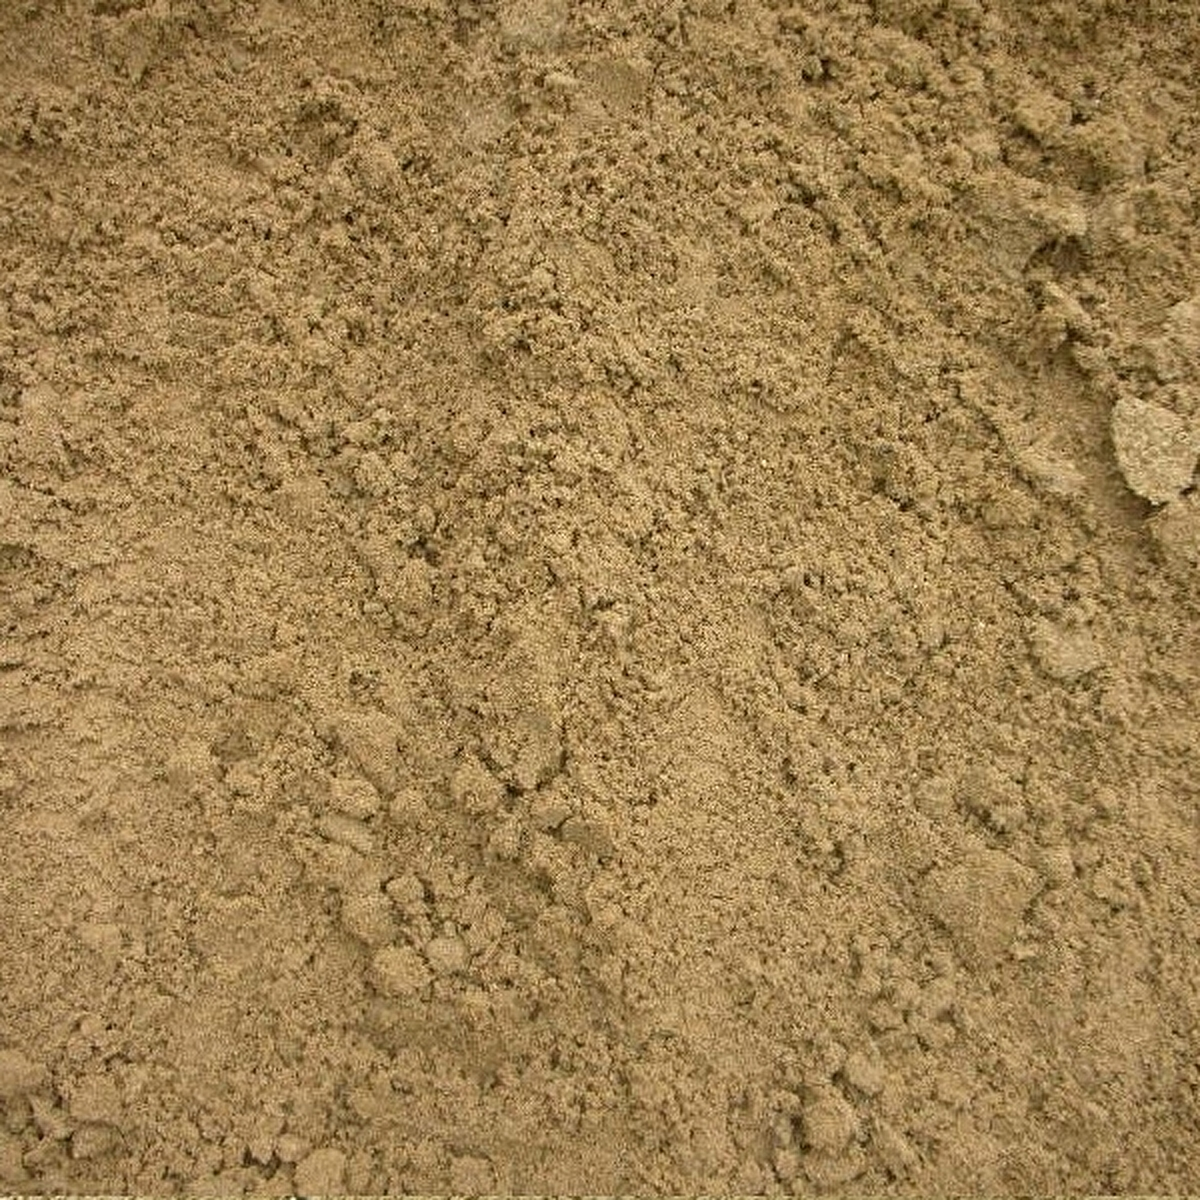 I never got to play that game Sega made out of sand